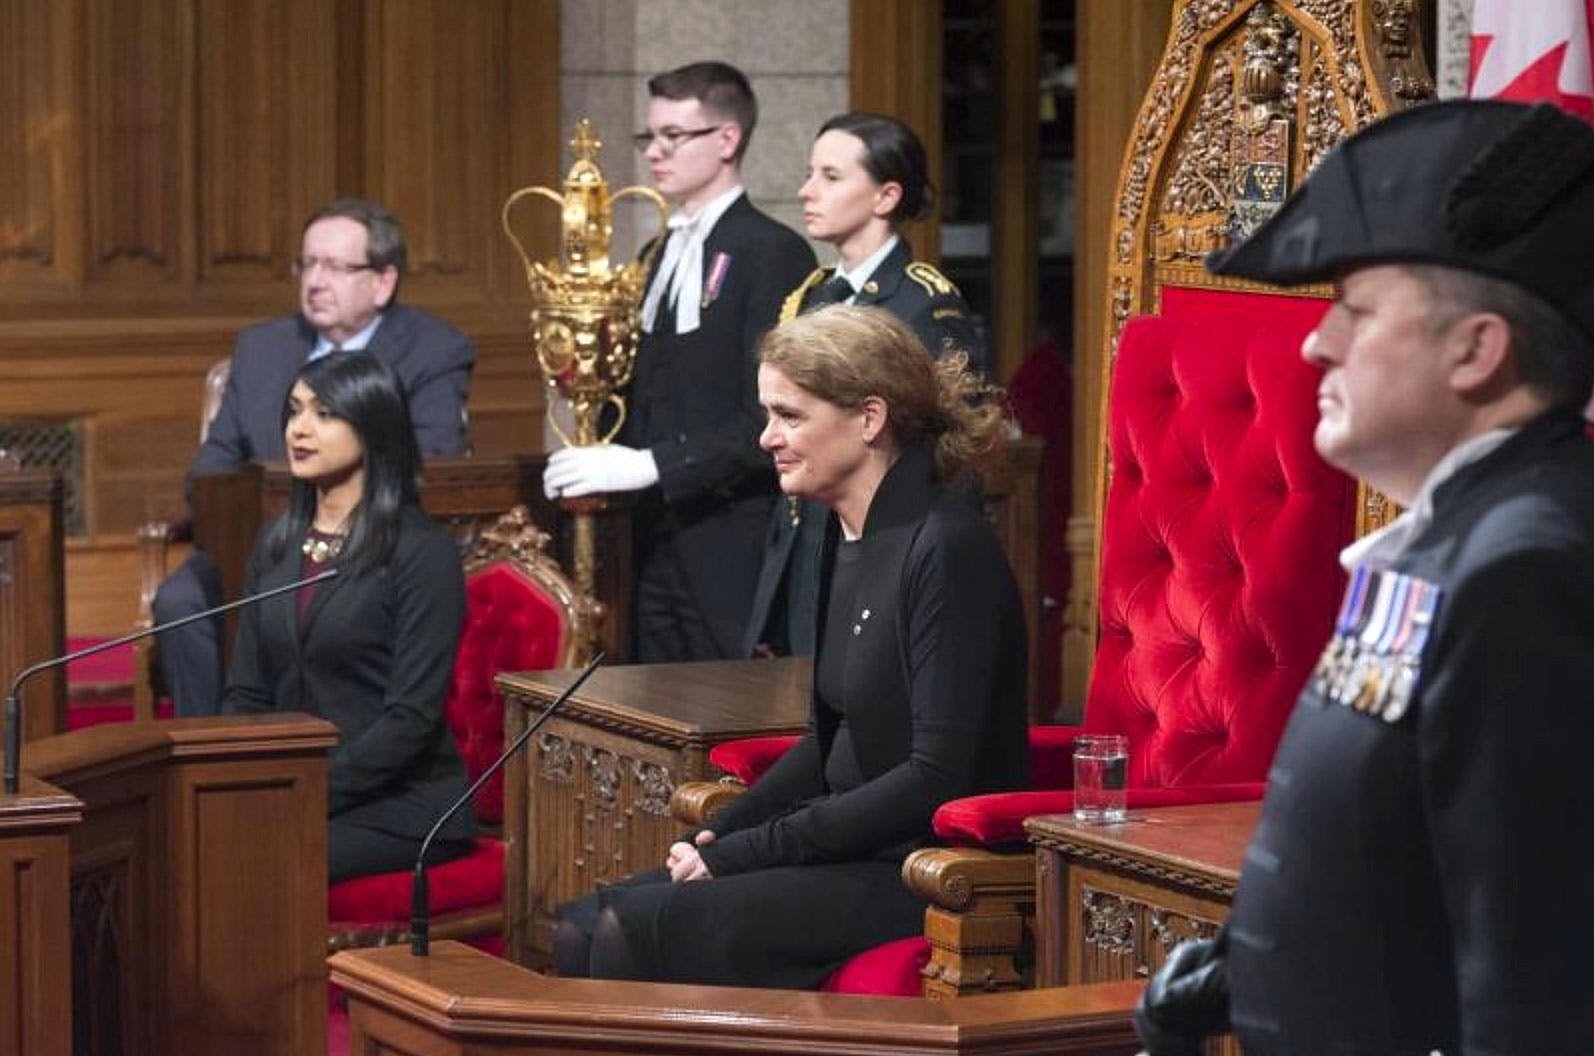 The Cannabis Act Just Got Royal Assent Weed Will Be Legal on October 17th Percolator Bongs Are Perfect For Smooth and Cool Summertime Hits